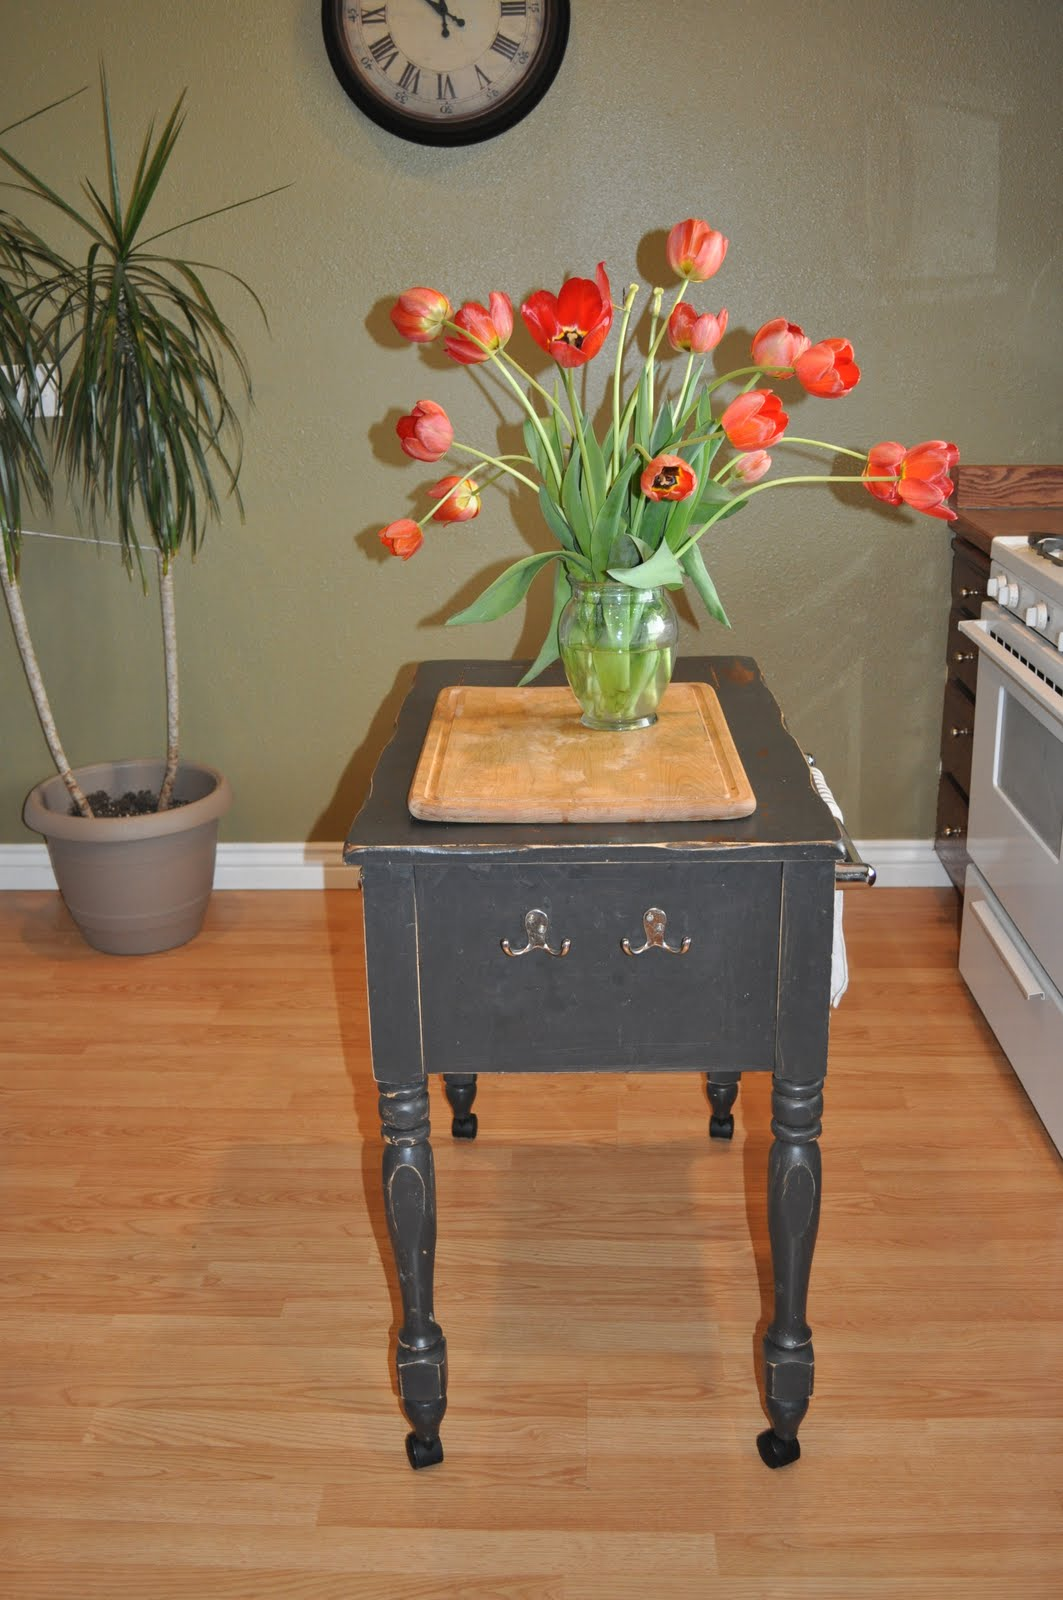 Mainstay Kitchen Table Used